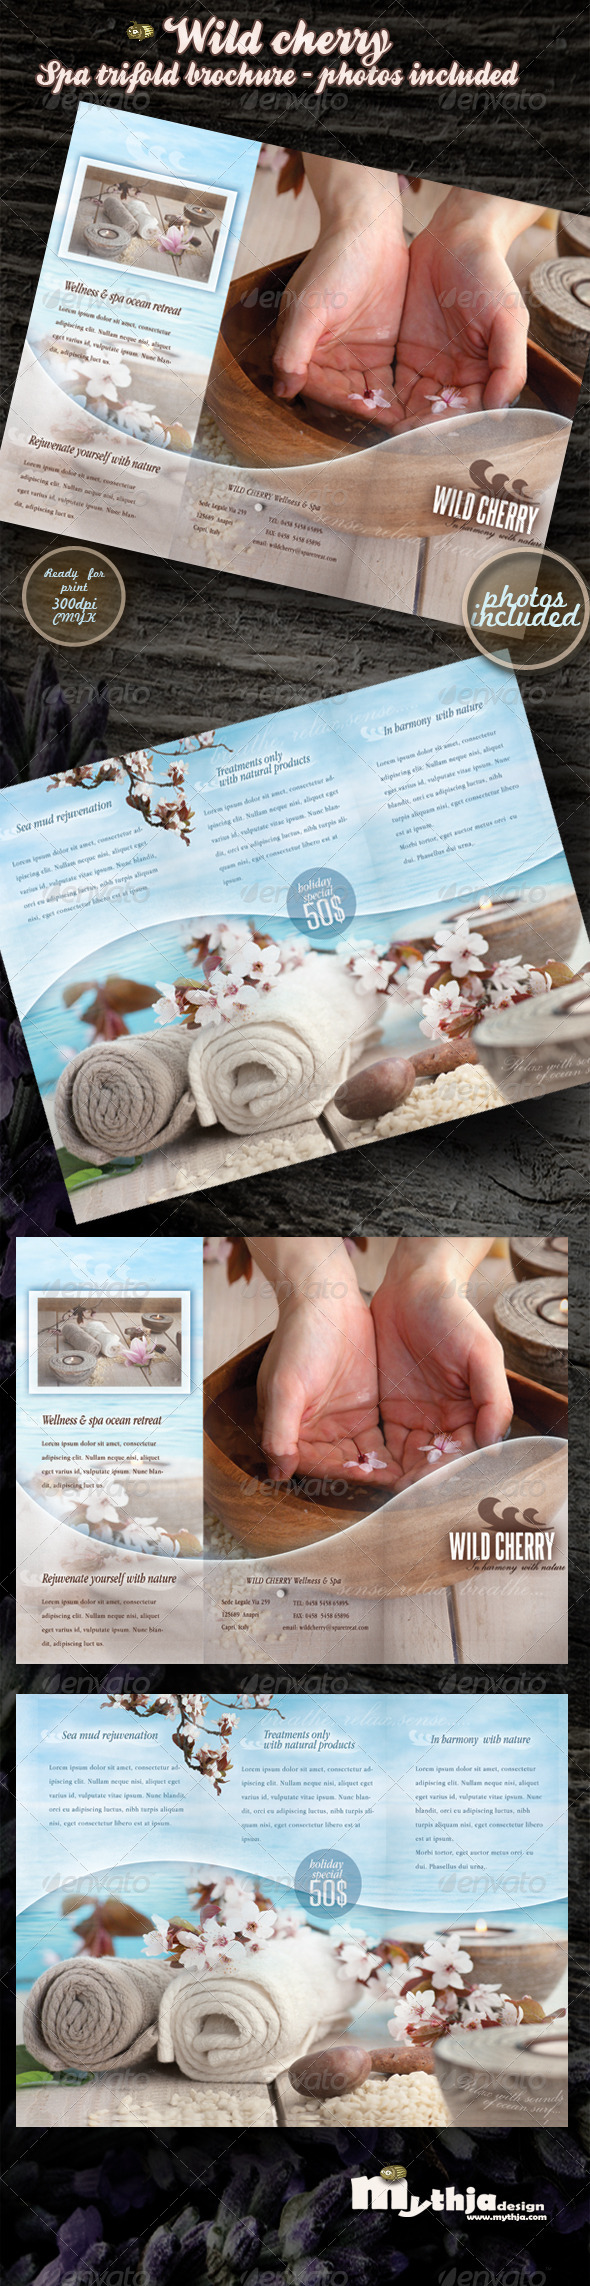 GraphicRiver Wild cherry spa & wellness trifold brochure 2174989